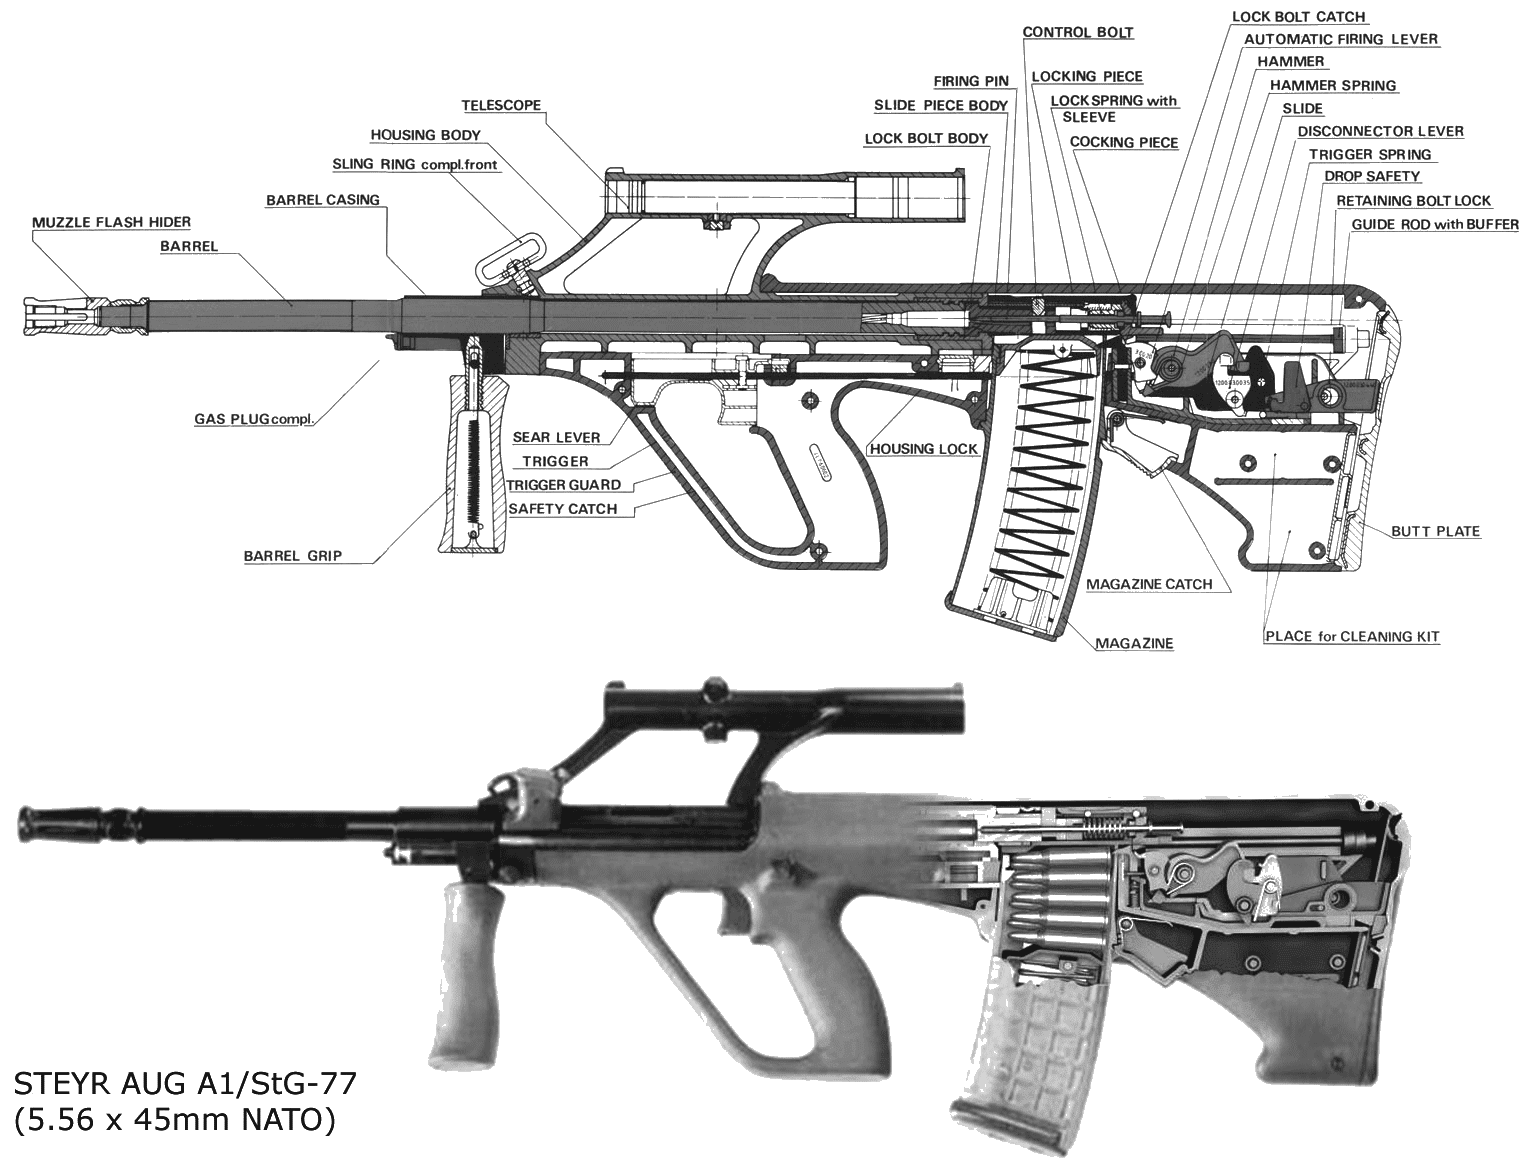 The Keyzone Rifle Steyr Aug